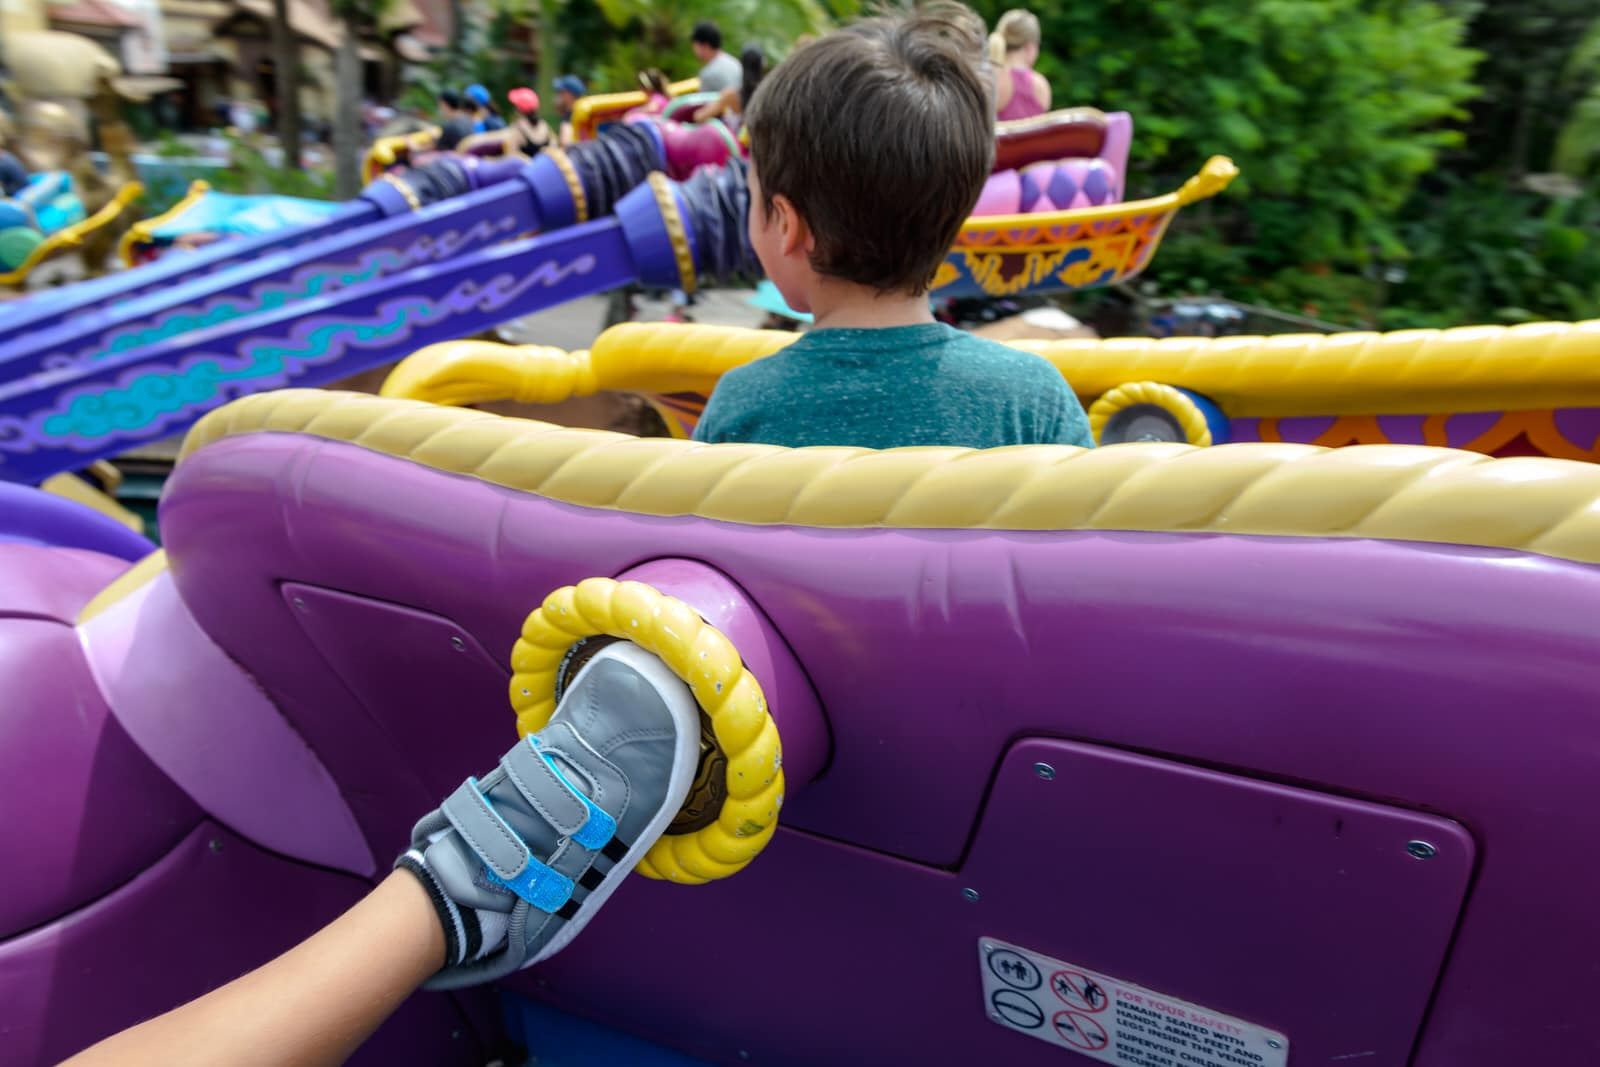 boy presses button with his foot on Magic Carpet ride